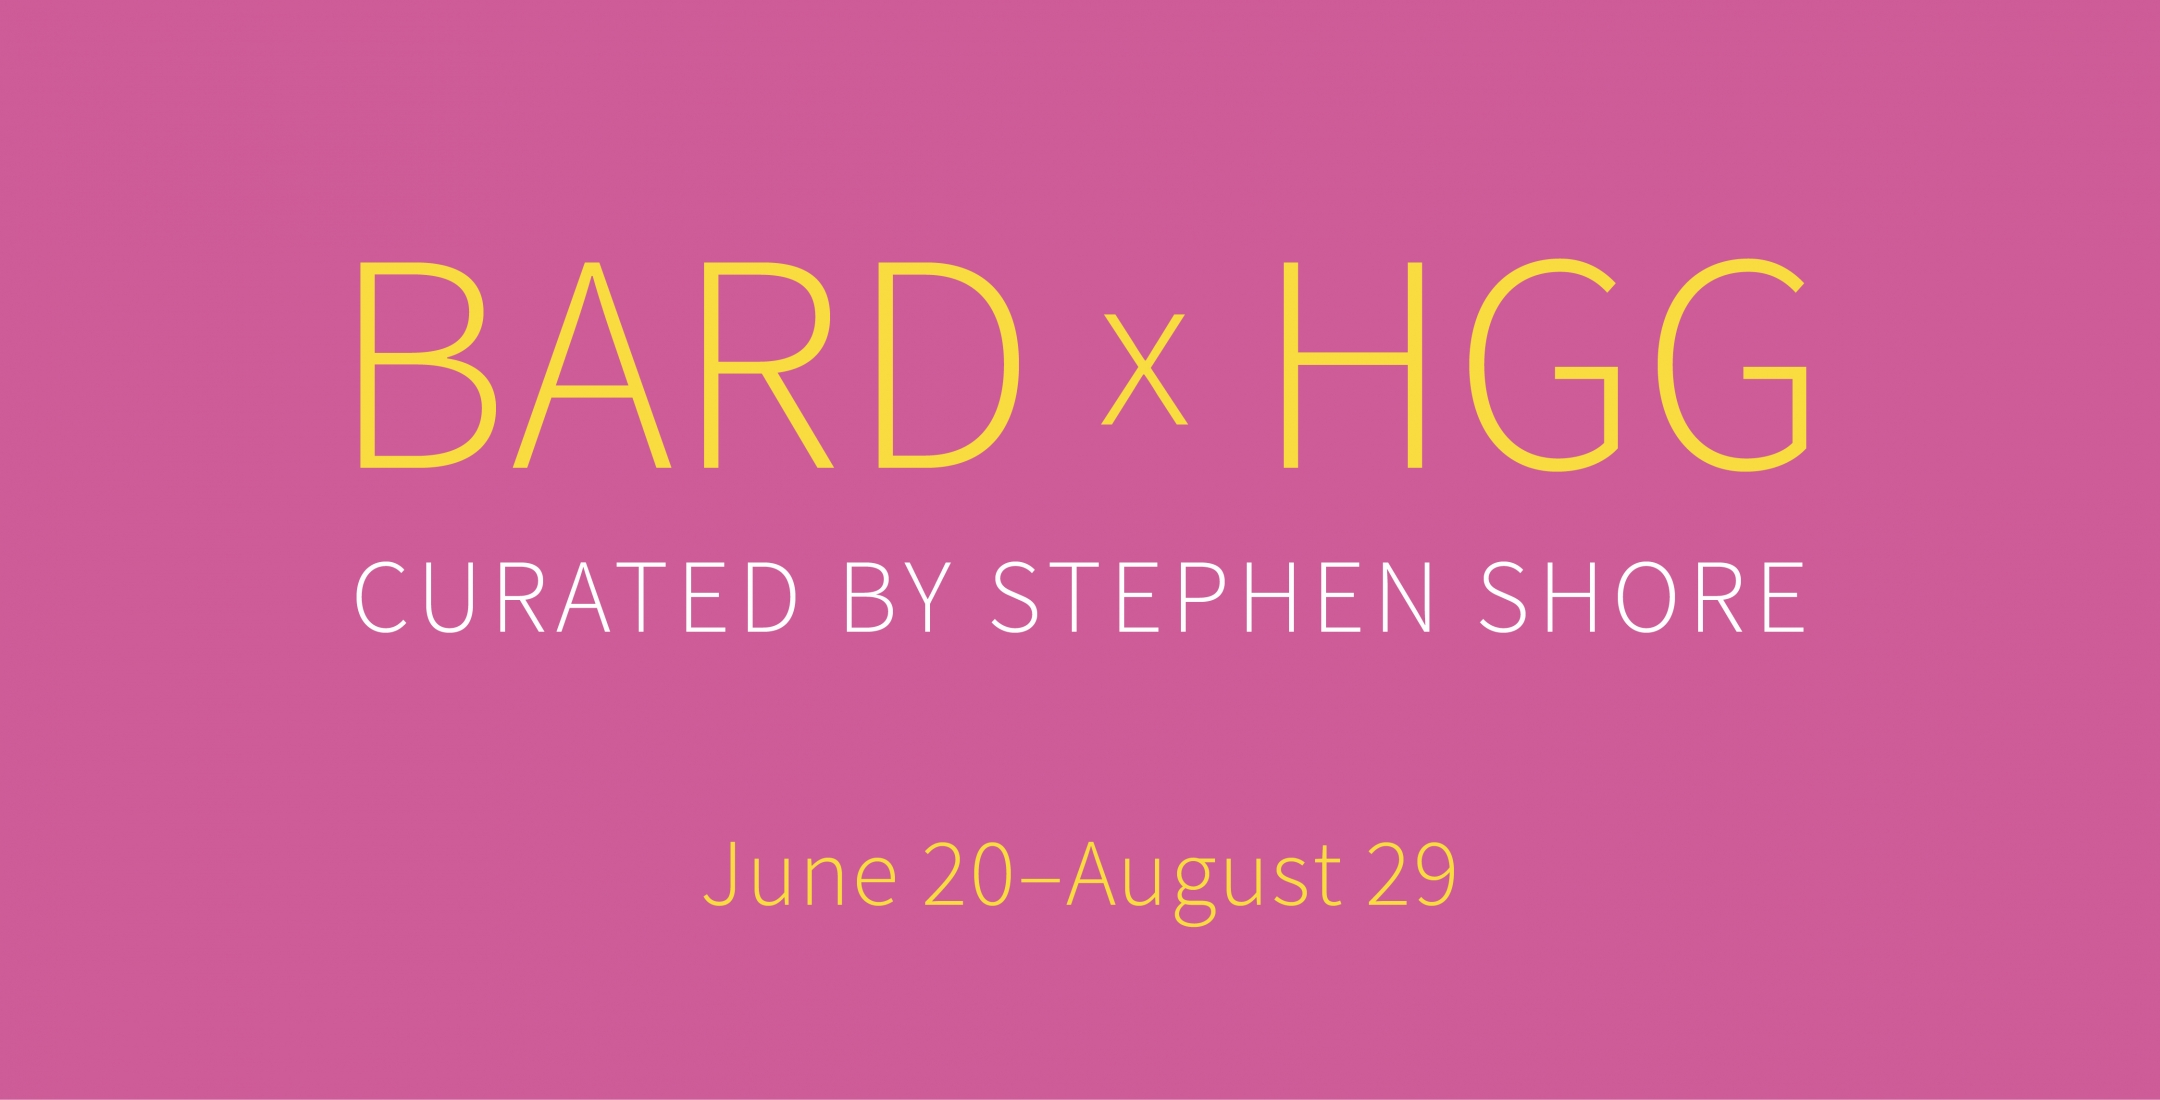 Bard, Howard Greenberg Gallery, Stephen Shore, 2019